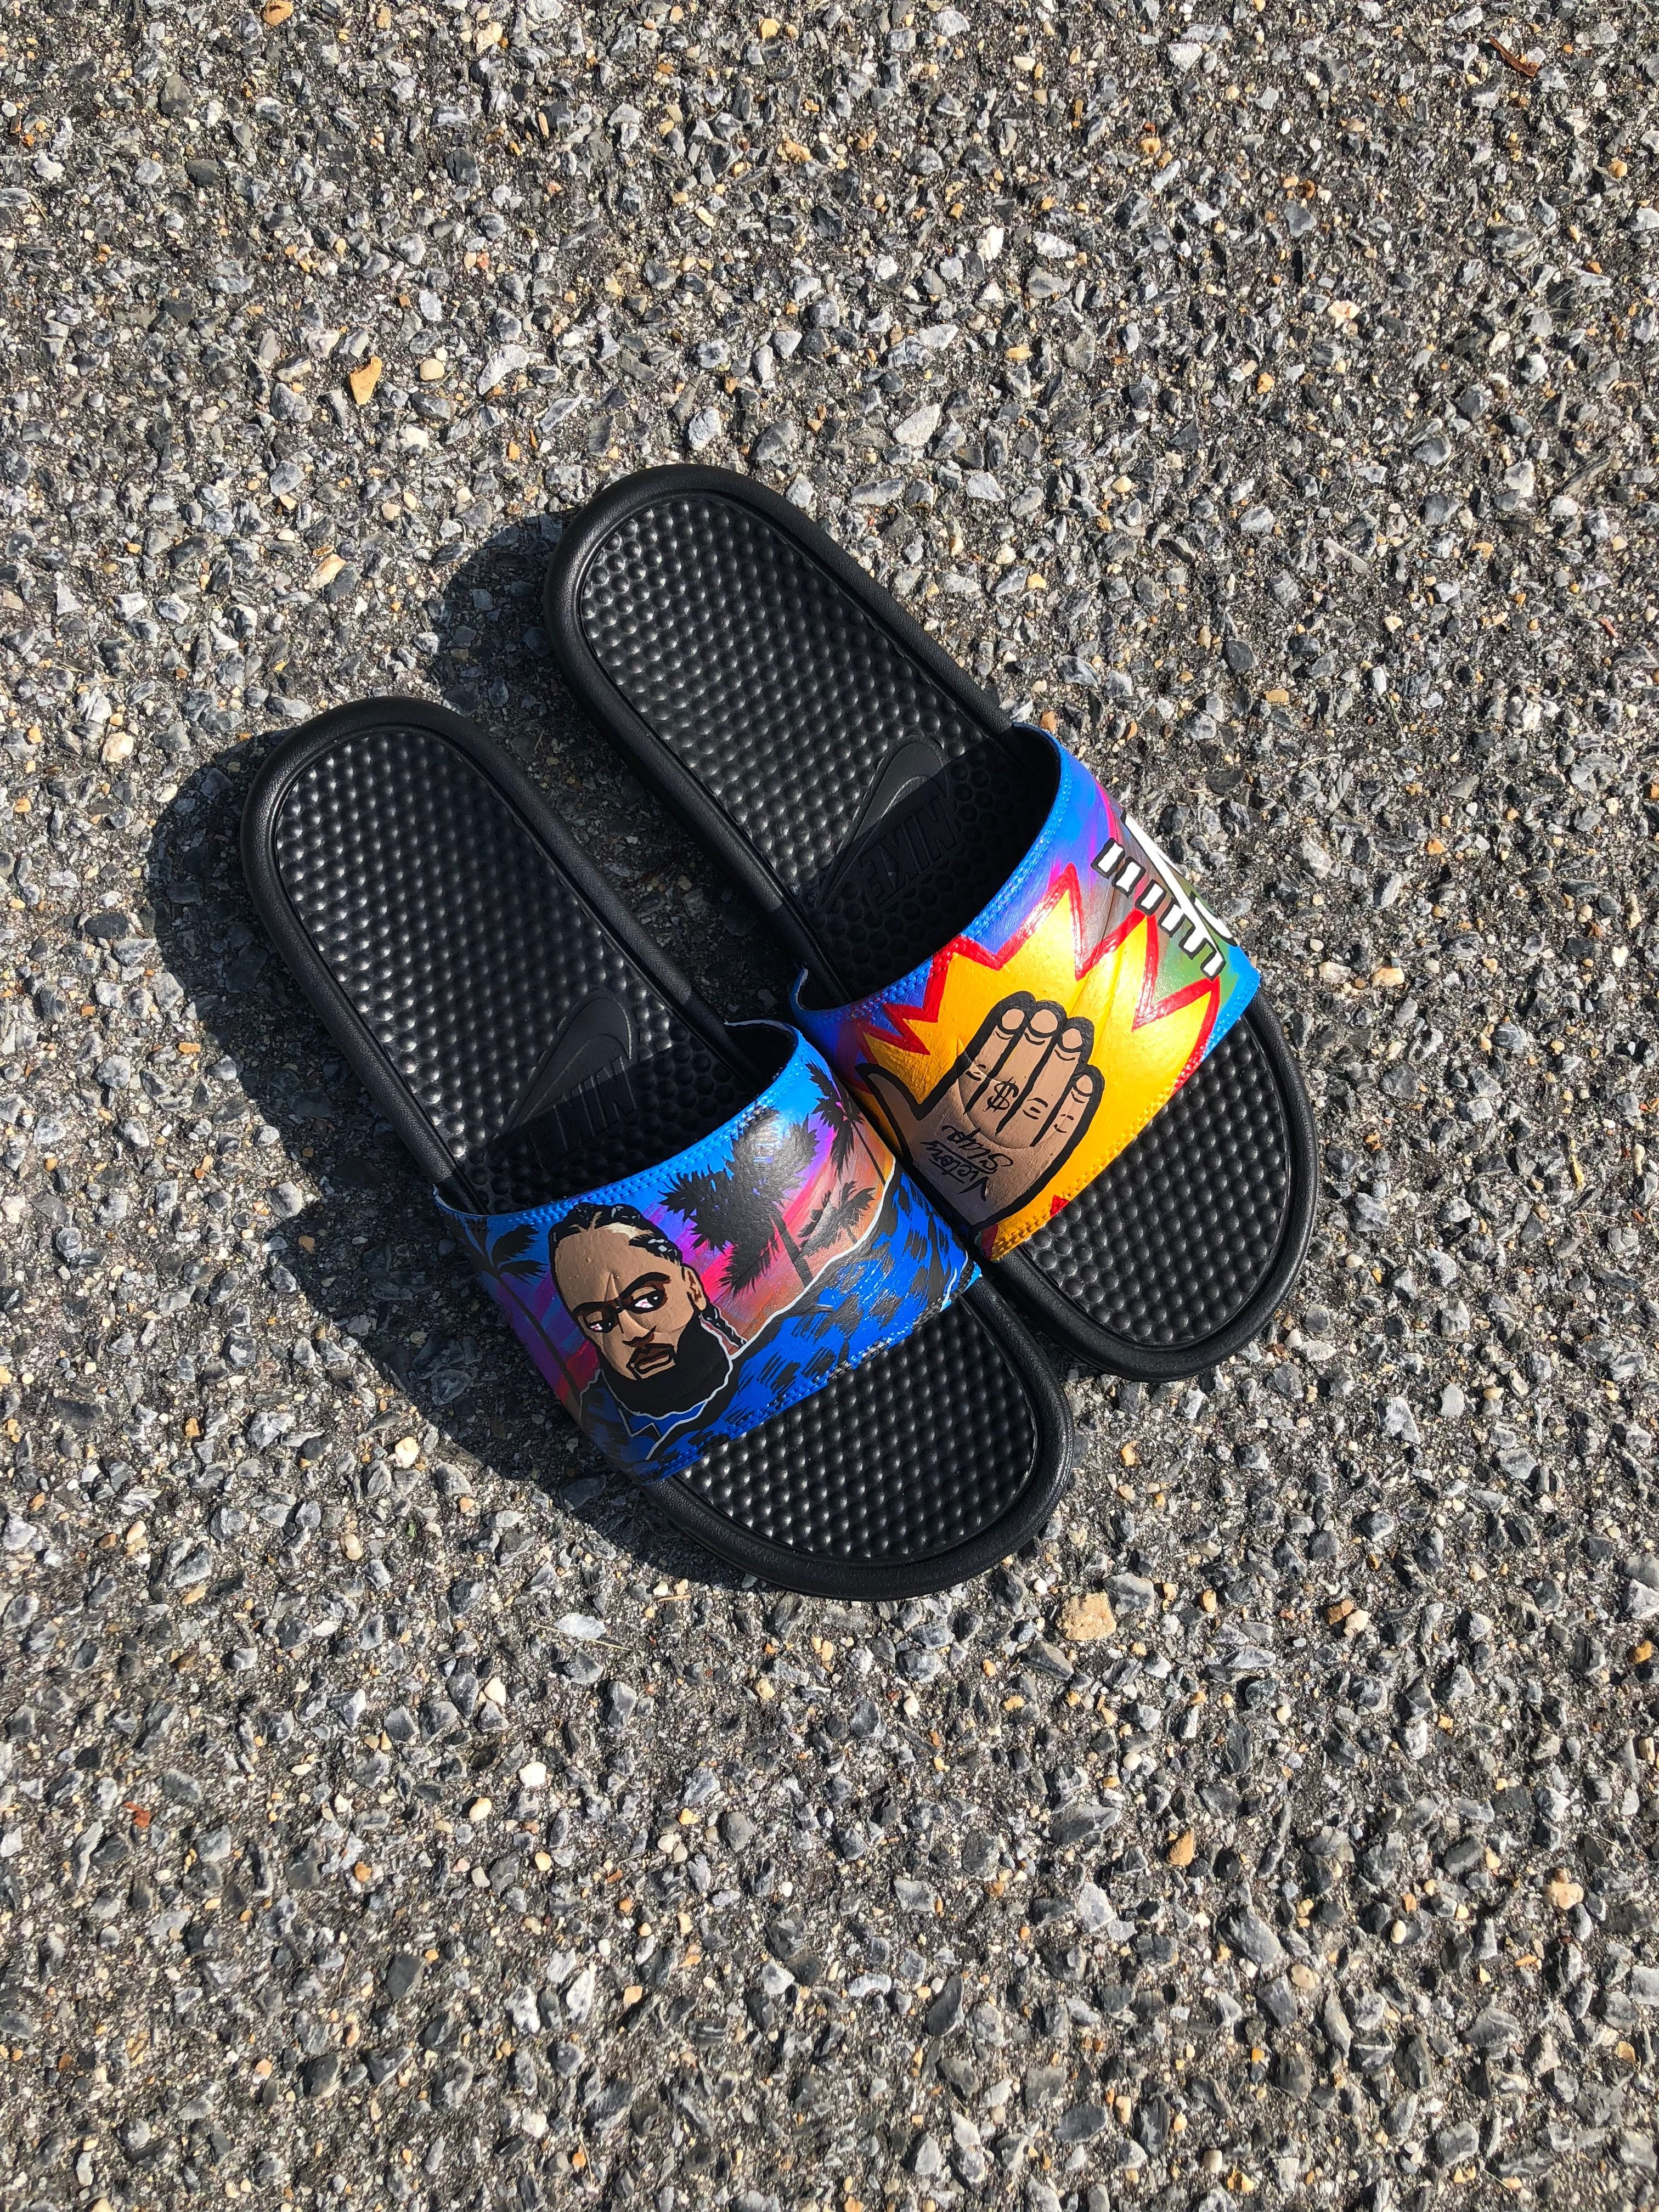 18d017287252 Victory Slap Nike Slides. Hand Painted By Weird Art Society Size 13  100  Flip Flop